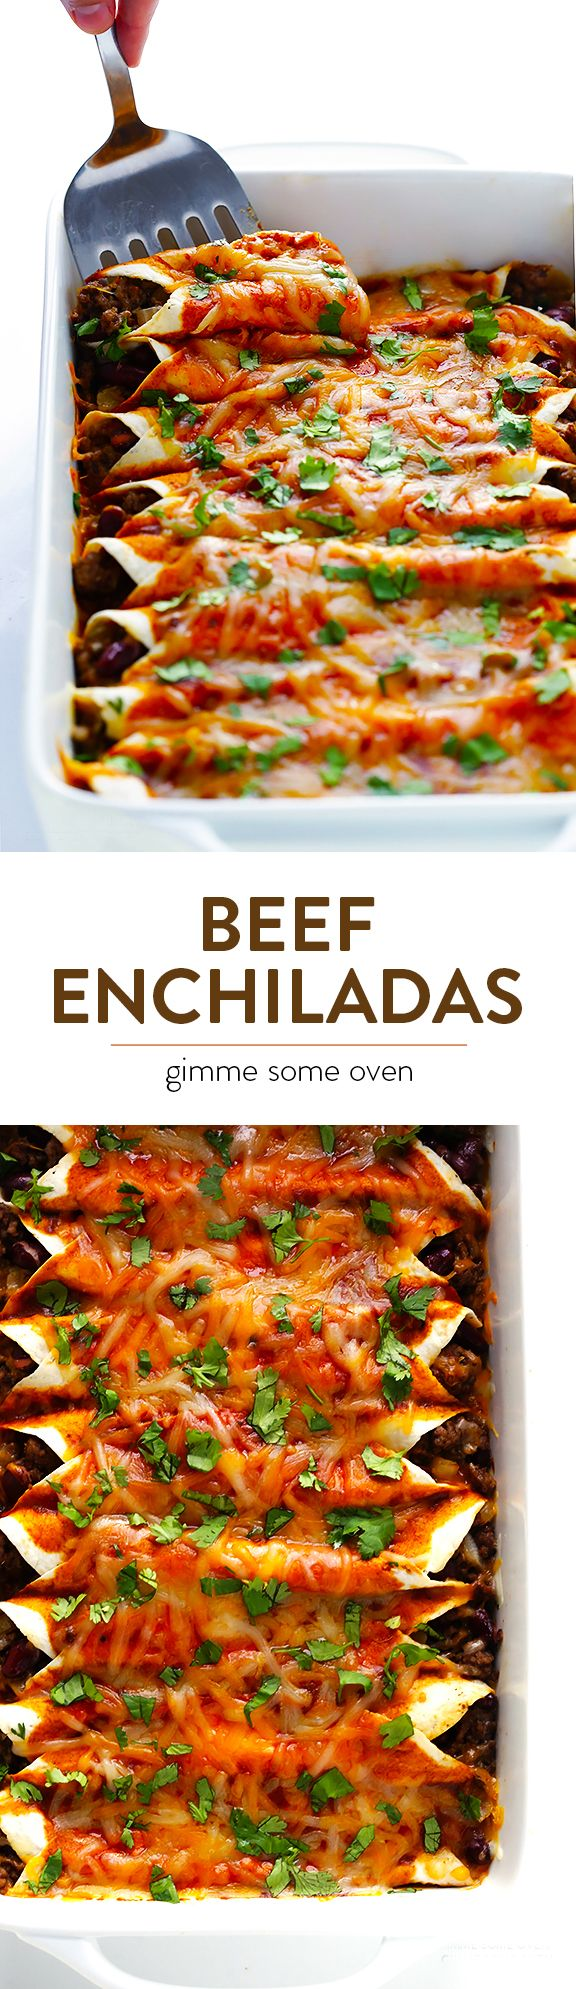 My favorite recipe for classic beef enchiladas, made with an easy homemade sauce and guaranteed to be a crowd pleaser! | gimmesomeoven.com